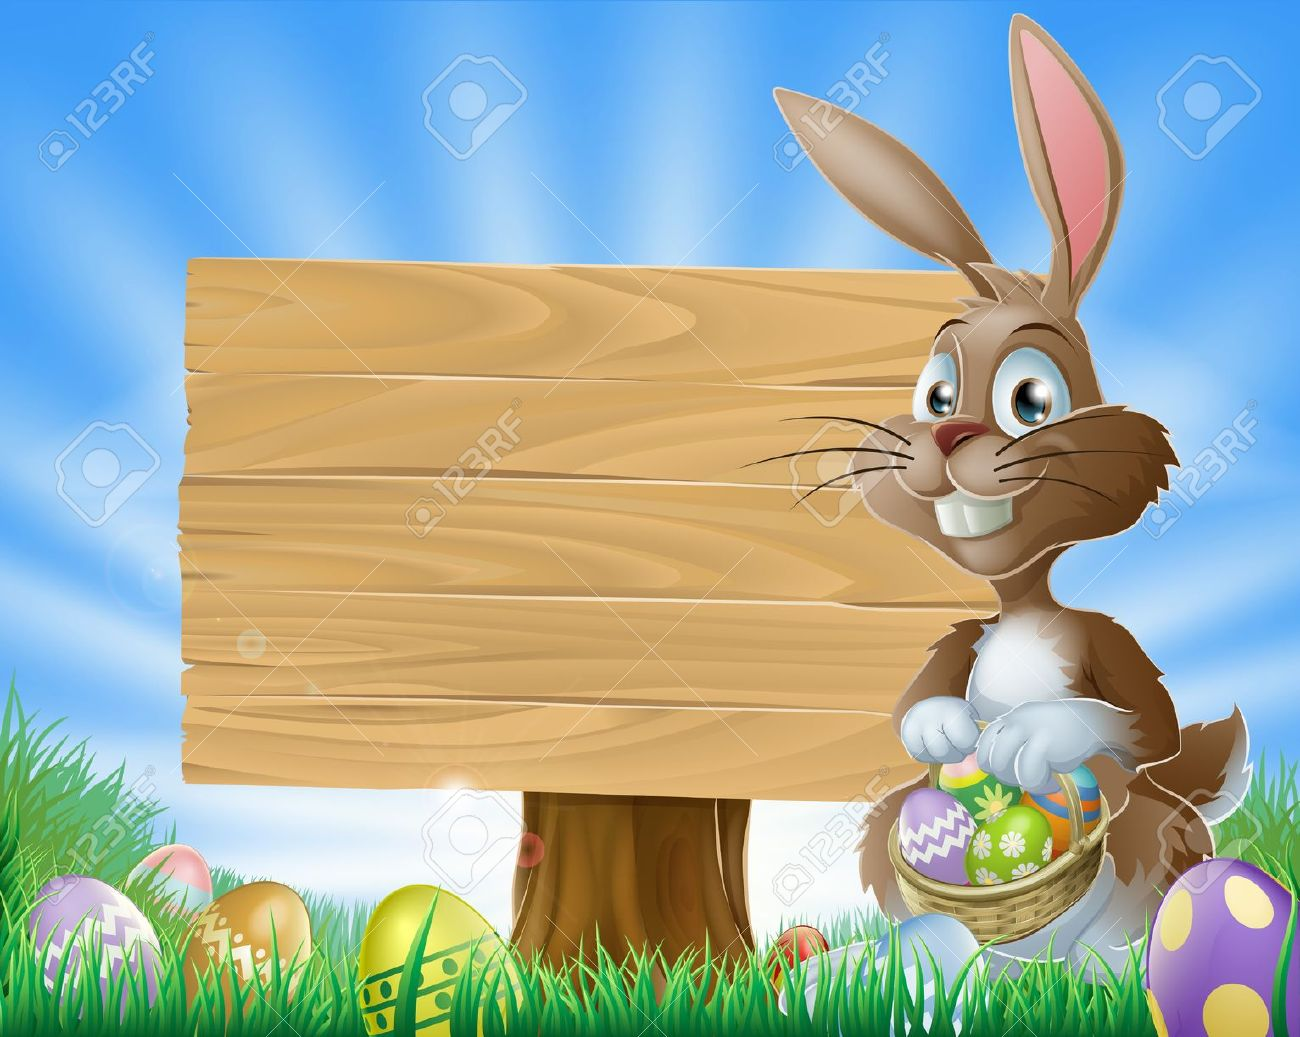 8,233 Easter Egg Hunt Stock Vector Illustration And Royalty Free ... picture royalty free download